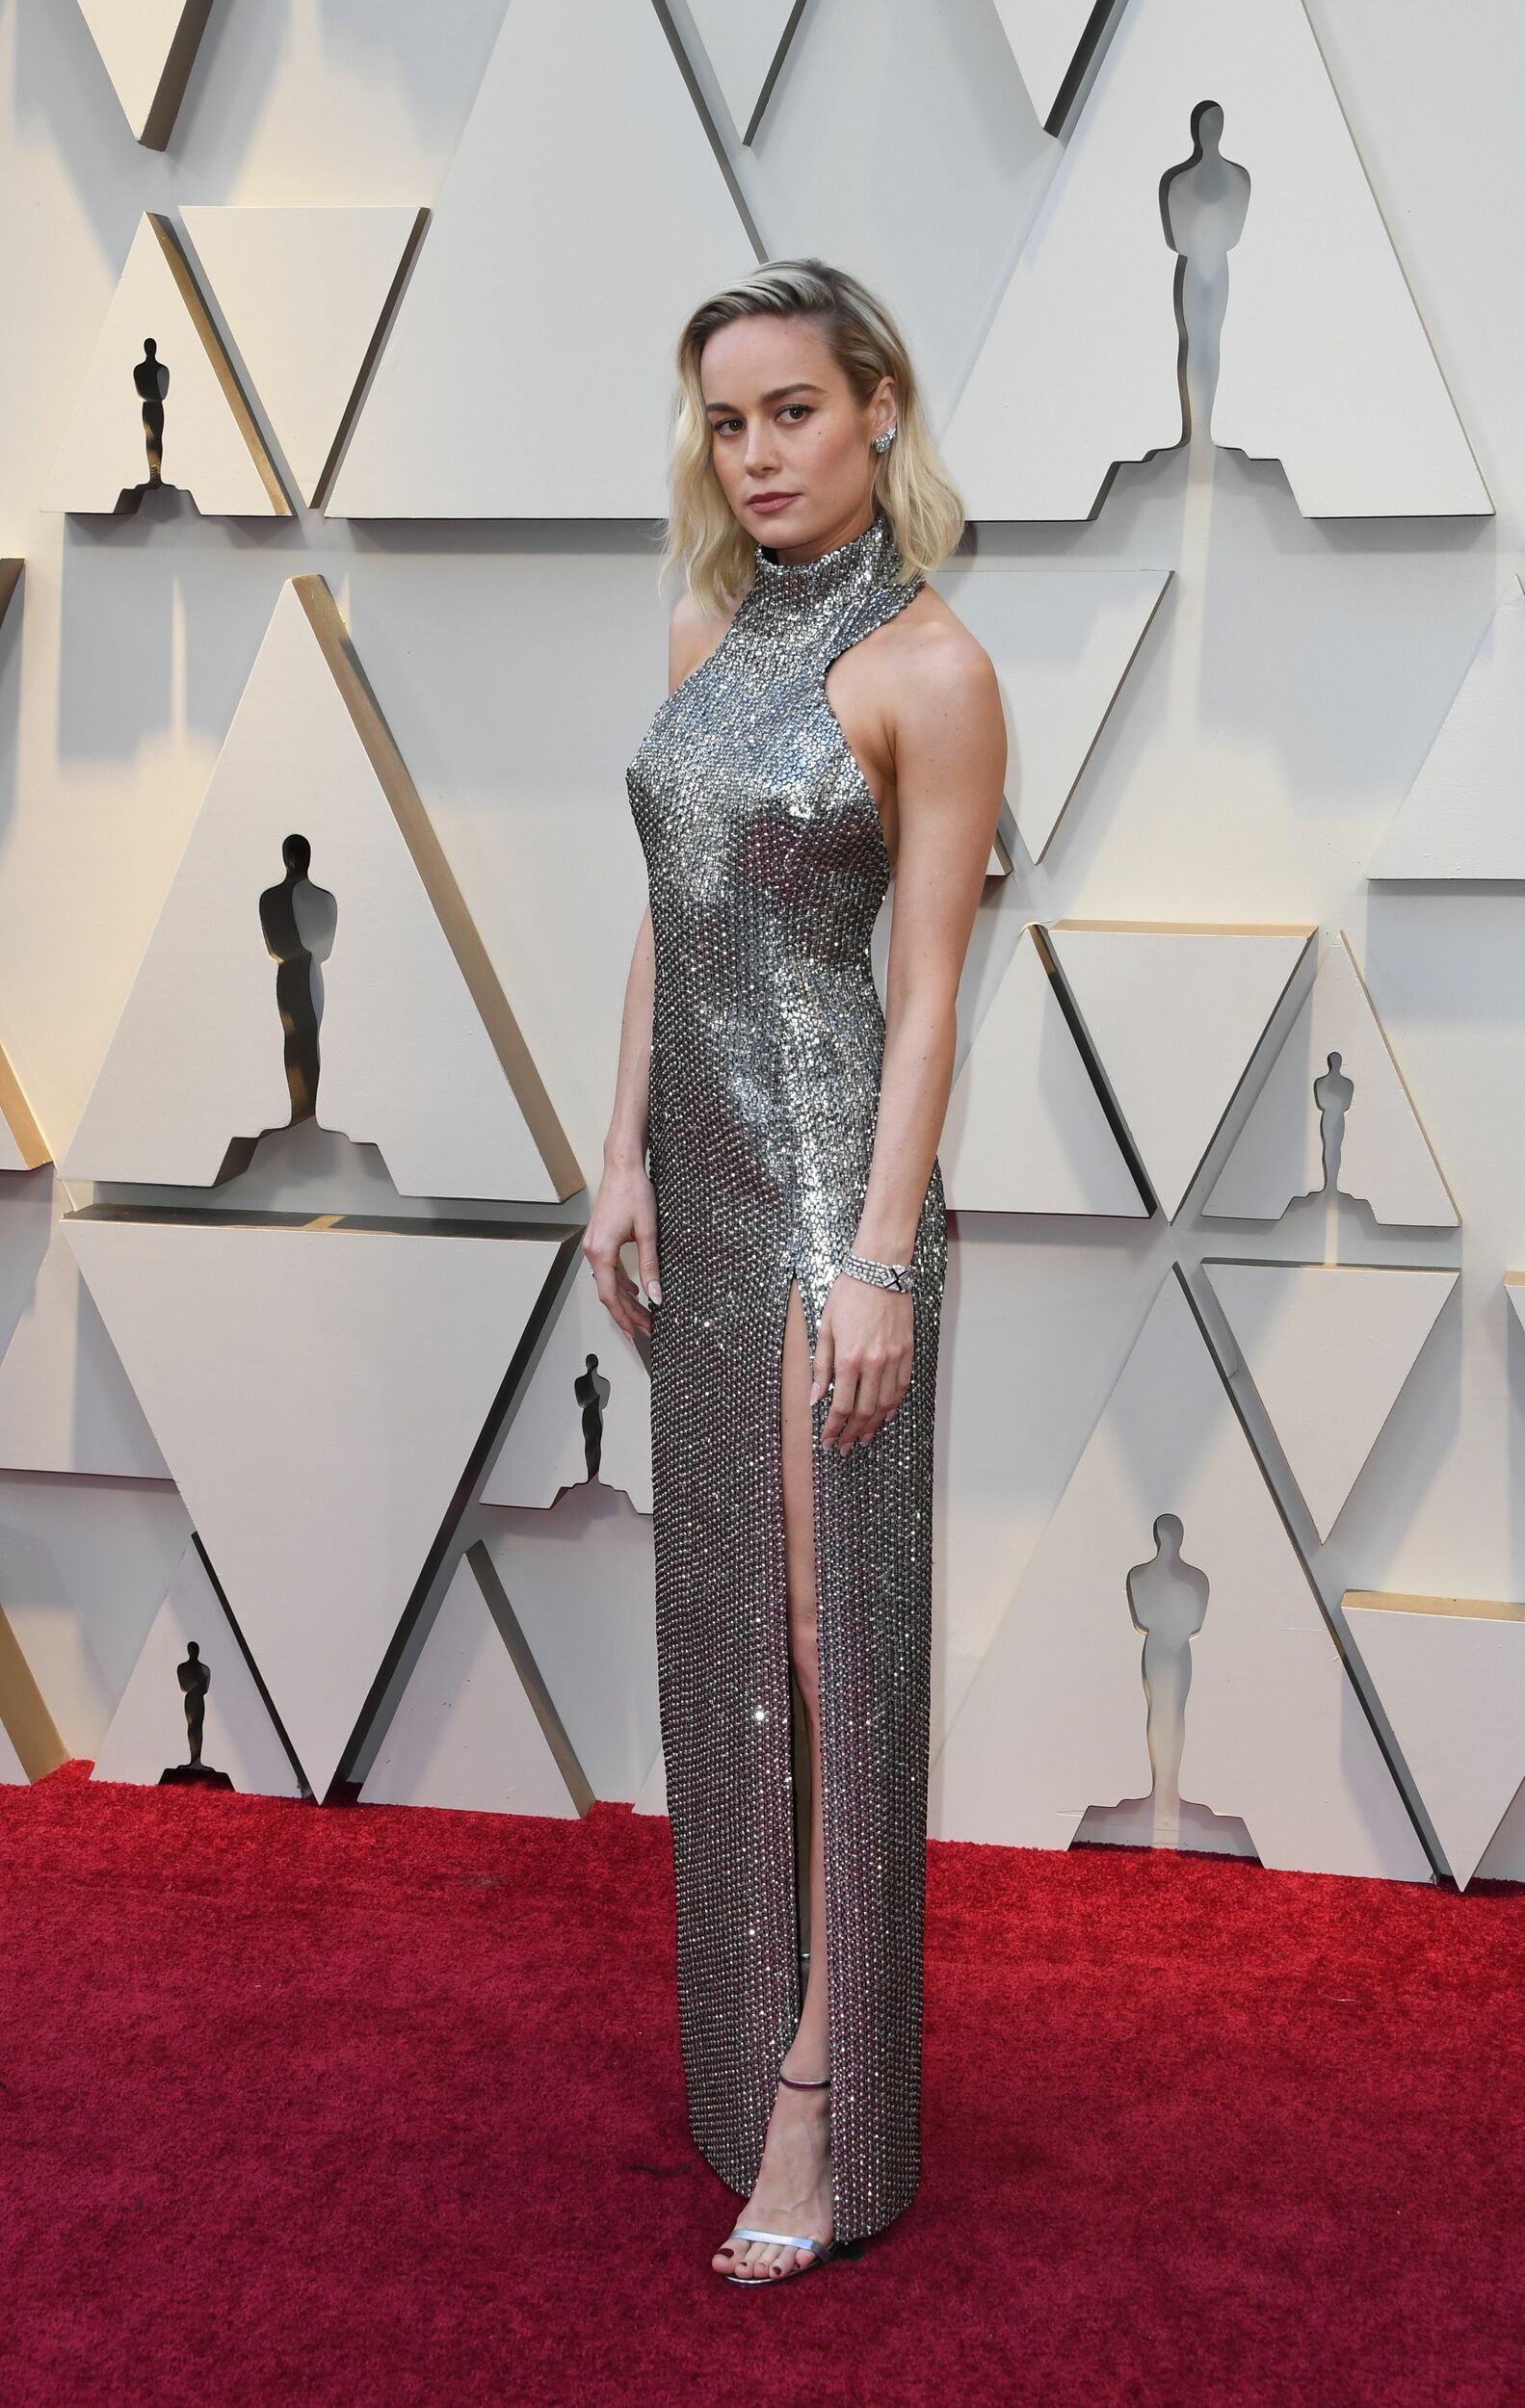 Do you think Oscar attendees have vision problems as a result of all that shininess?